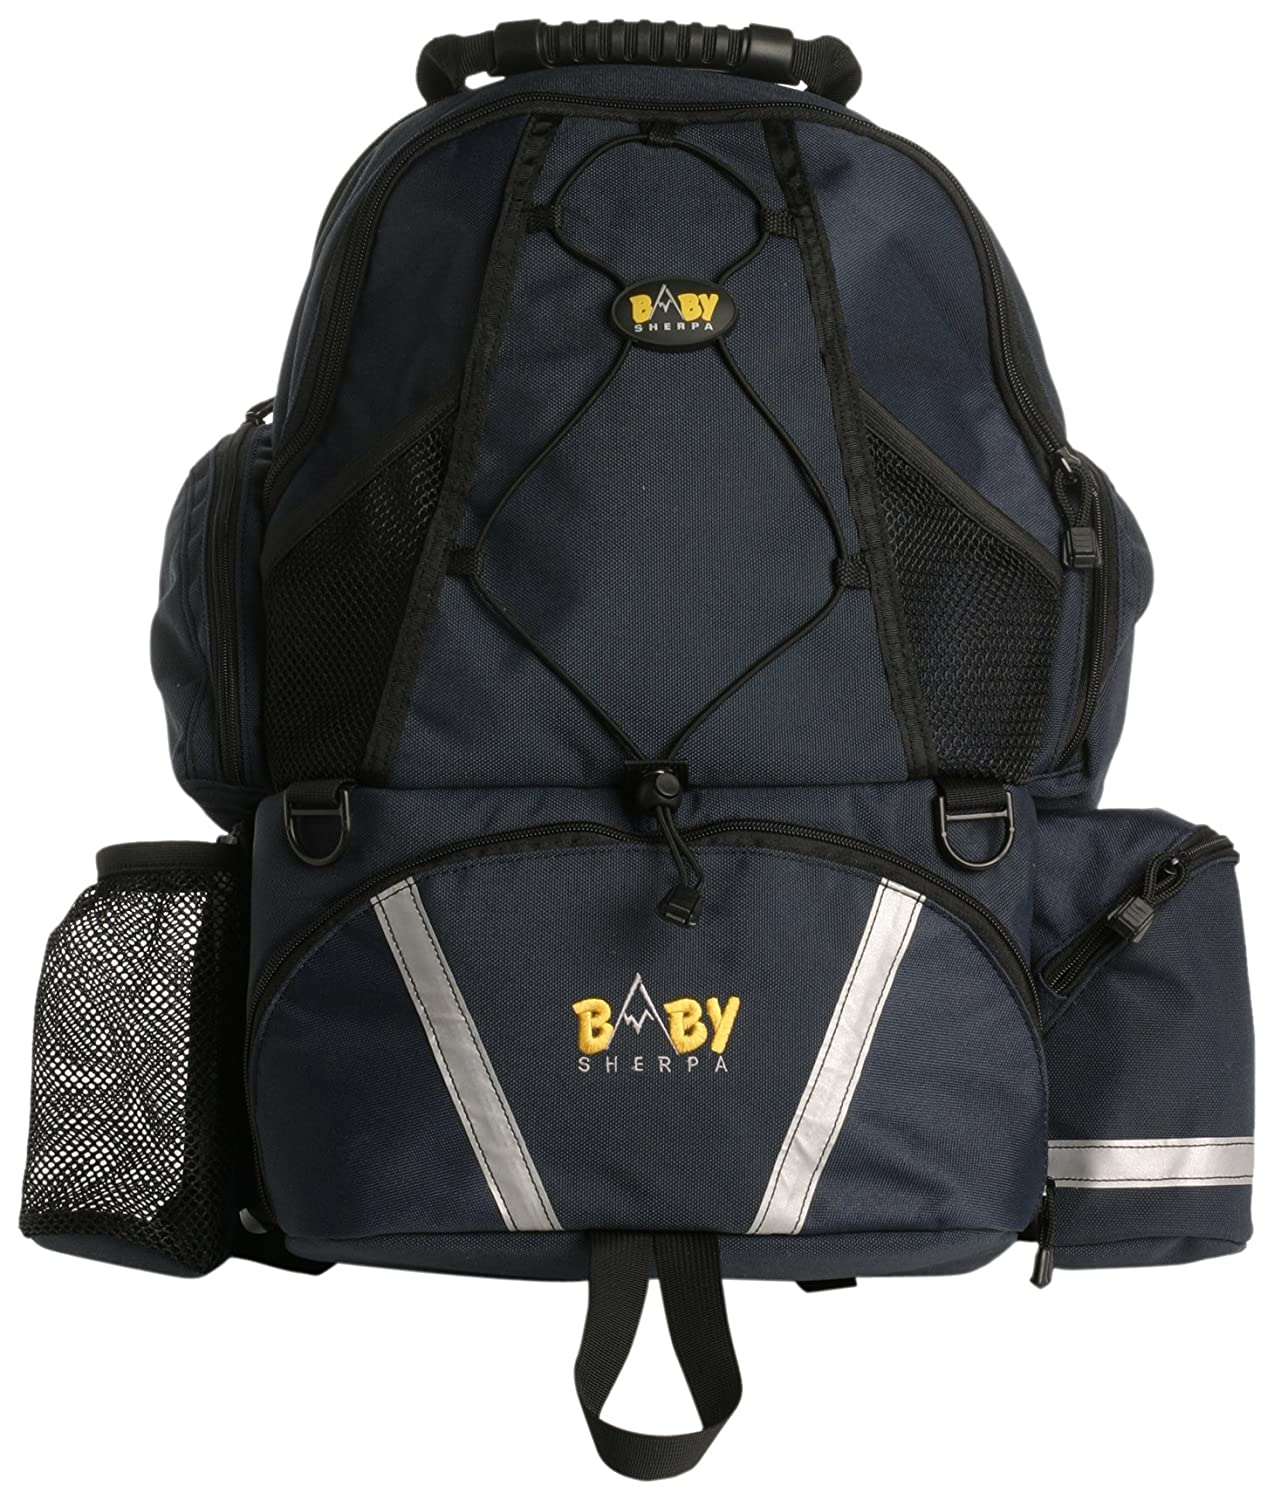 B000BO22RE Baby Sherpa Diaper Bag, Navy (Discontinued by Manufacturer) 81BRjyQ8eSL._SL1500_